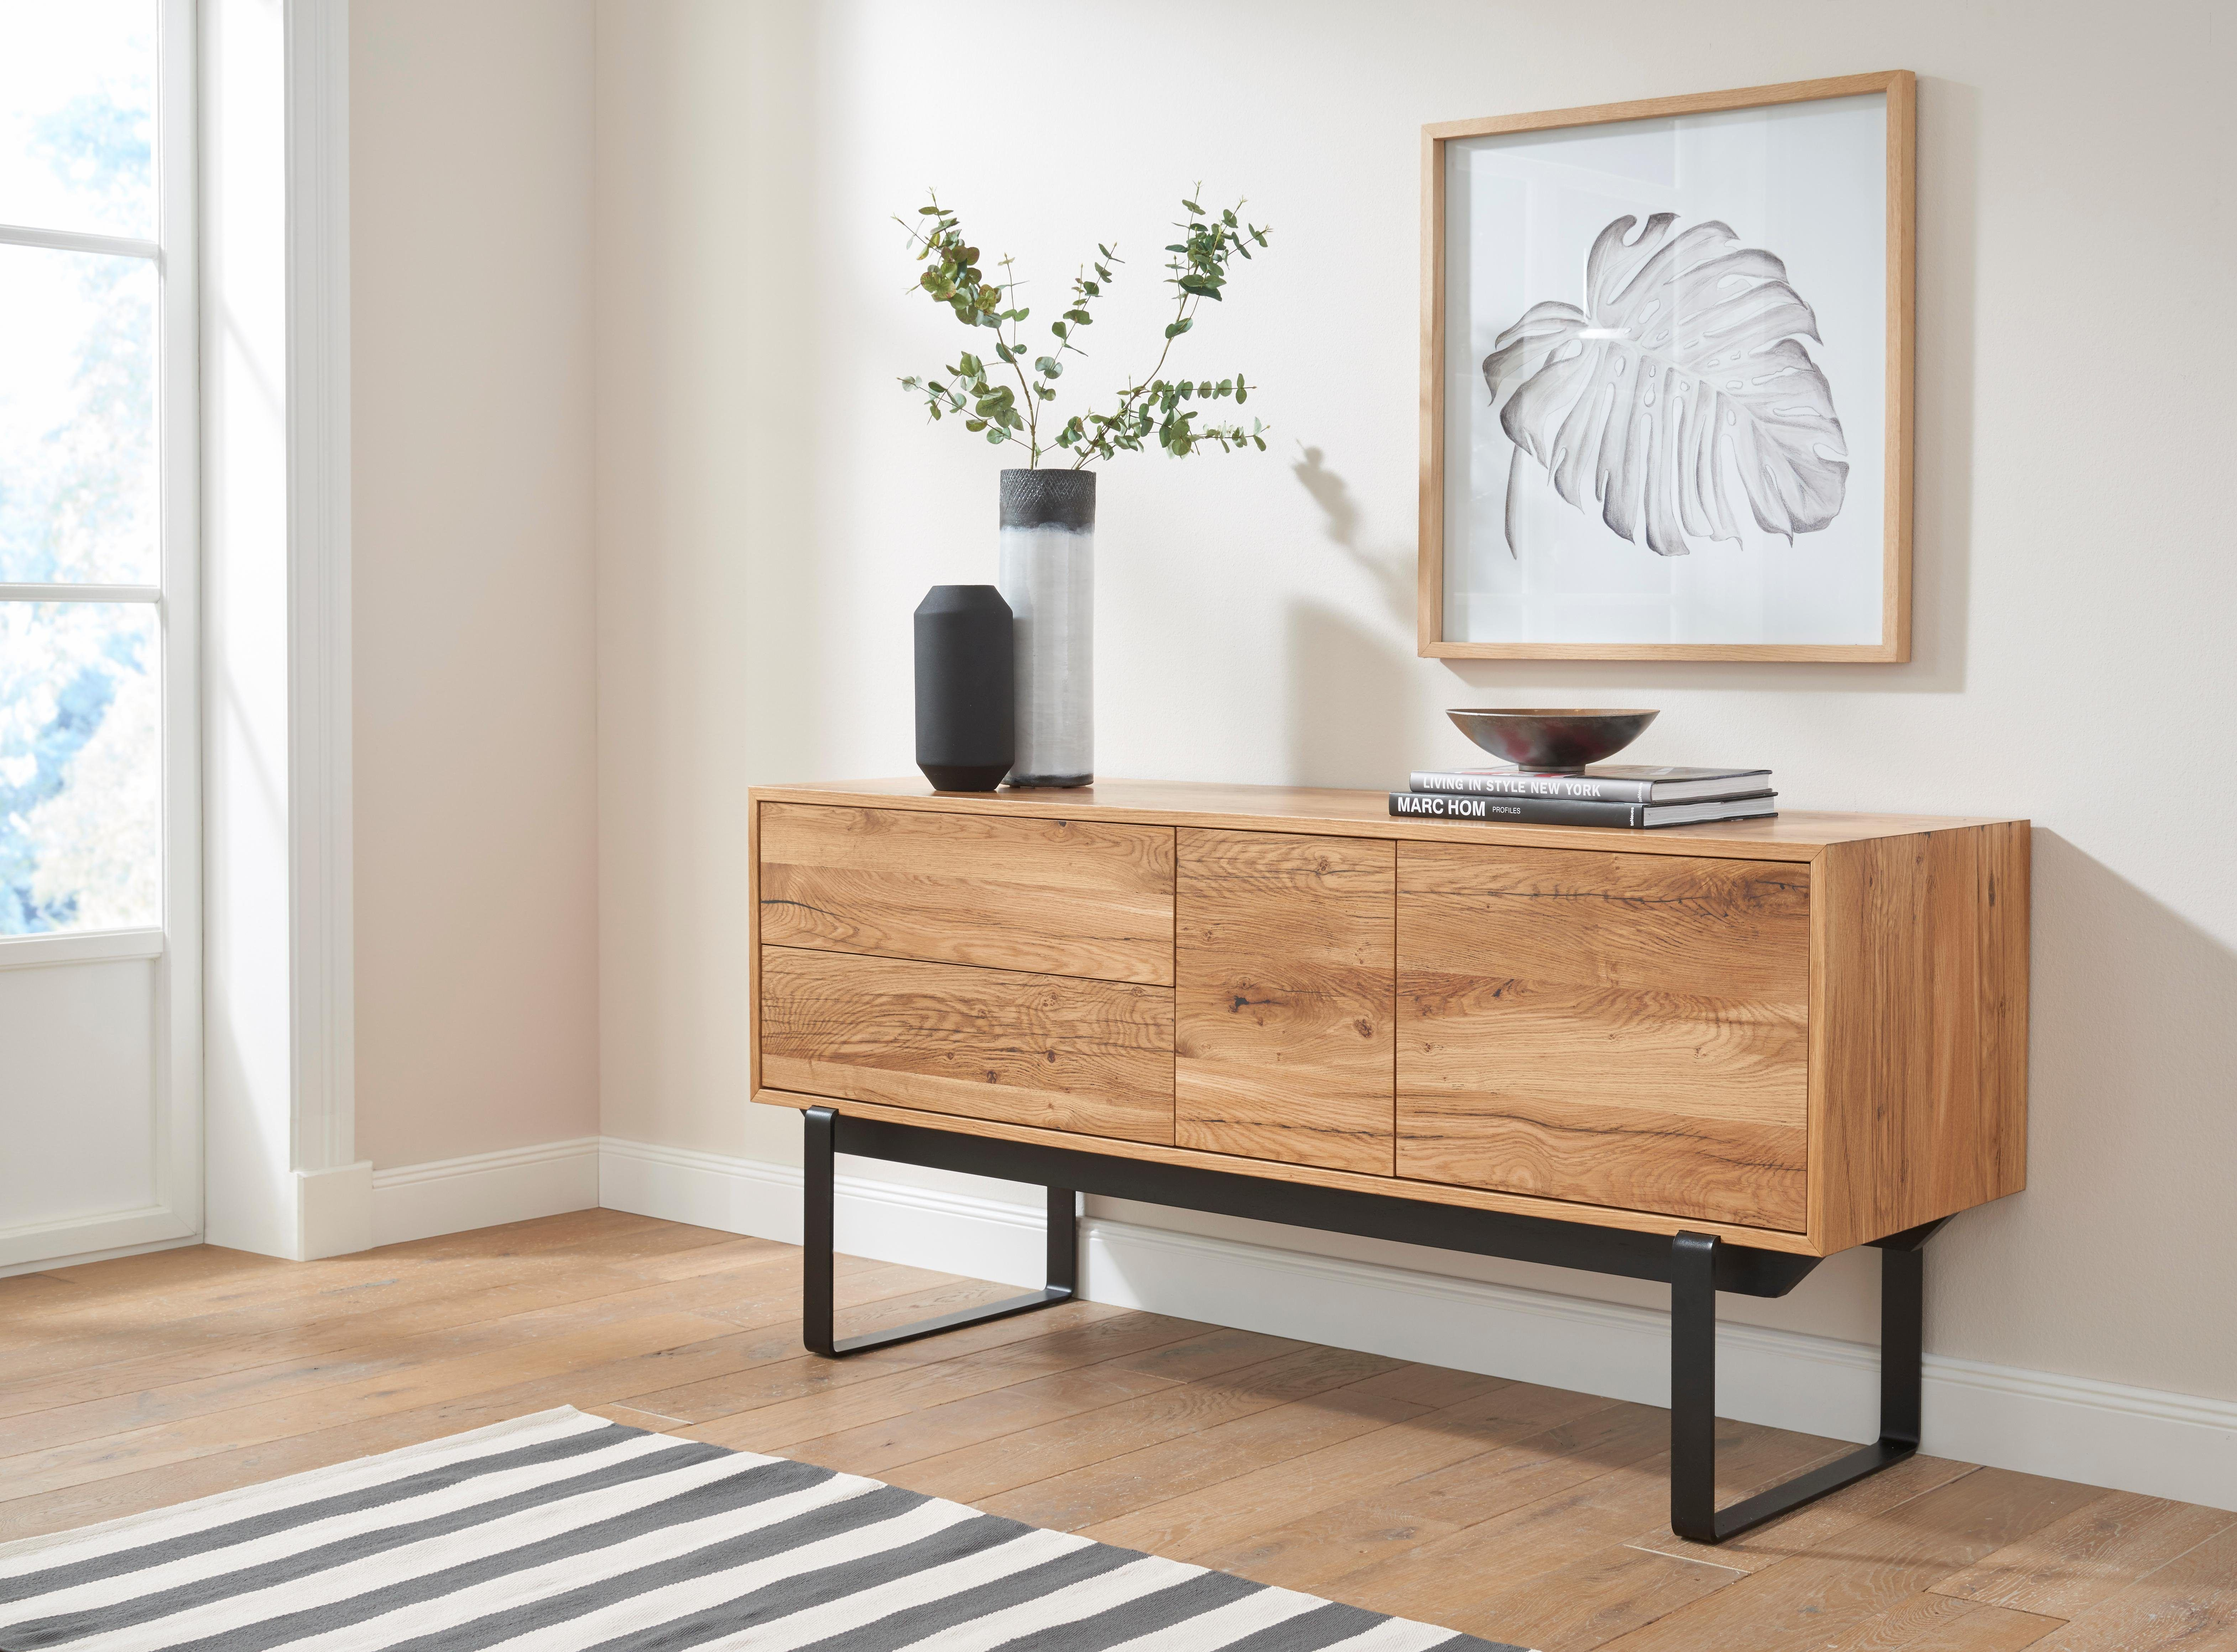 Sideboard Wohnzimmer ~ Andas sideboard beige factory« push to open funktion jetzt